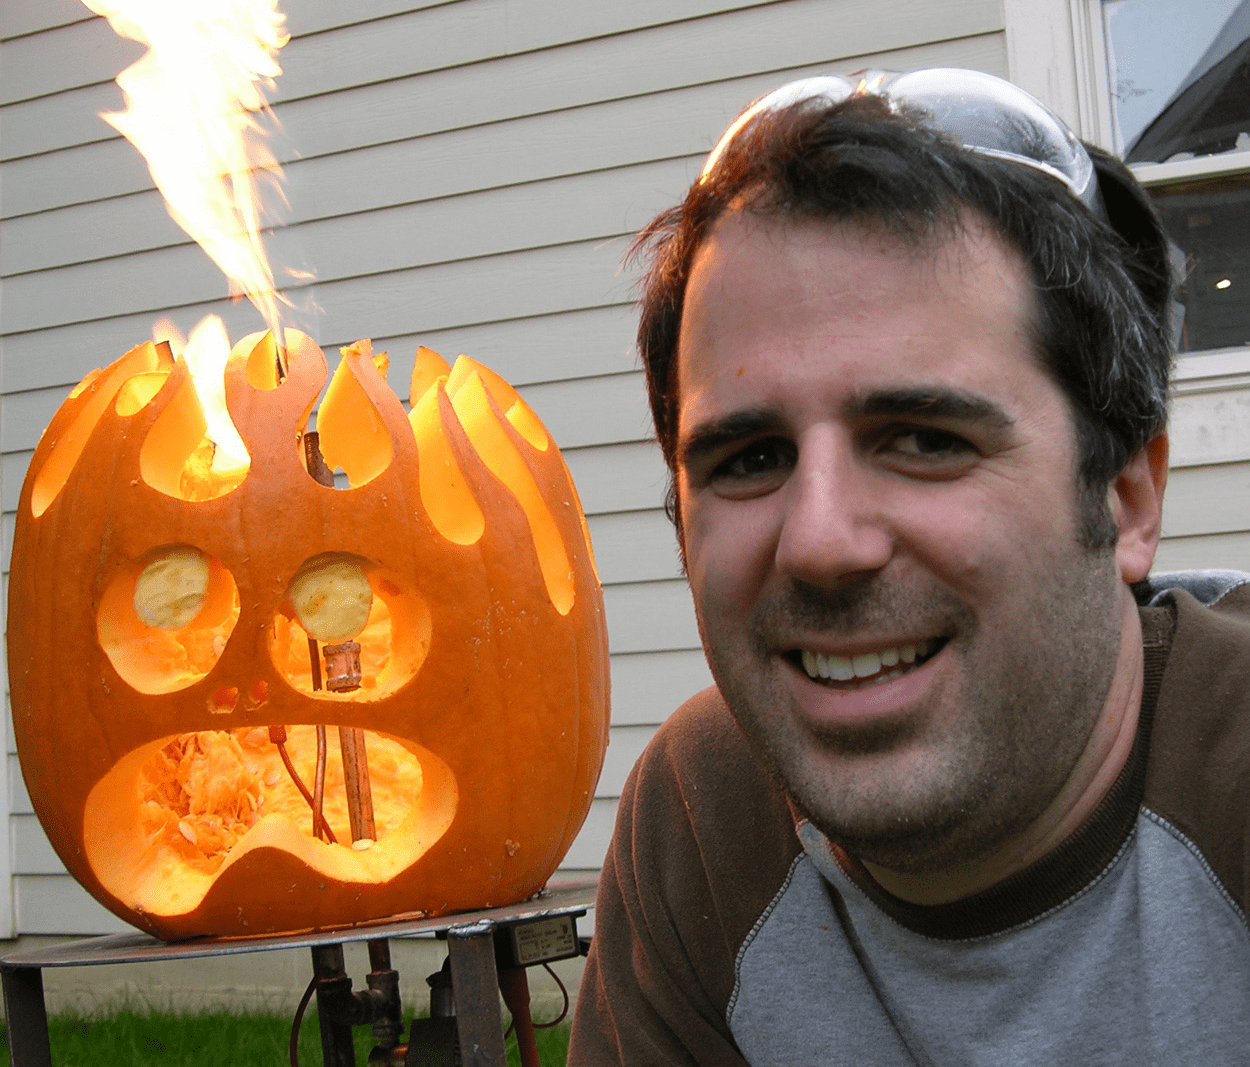 Pumpkin Carver for Hire - How To Hire Me for Your Event